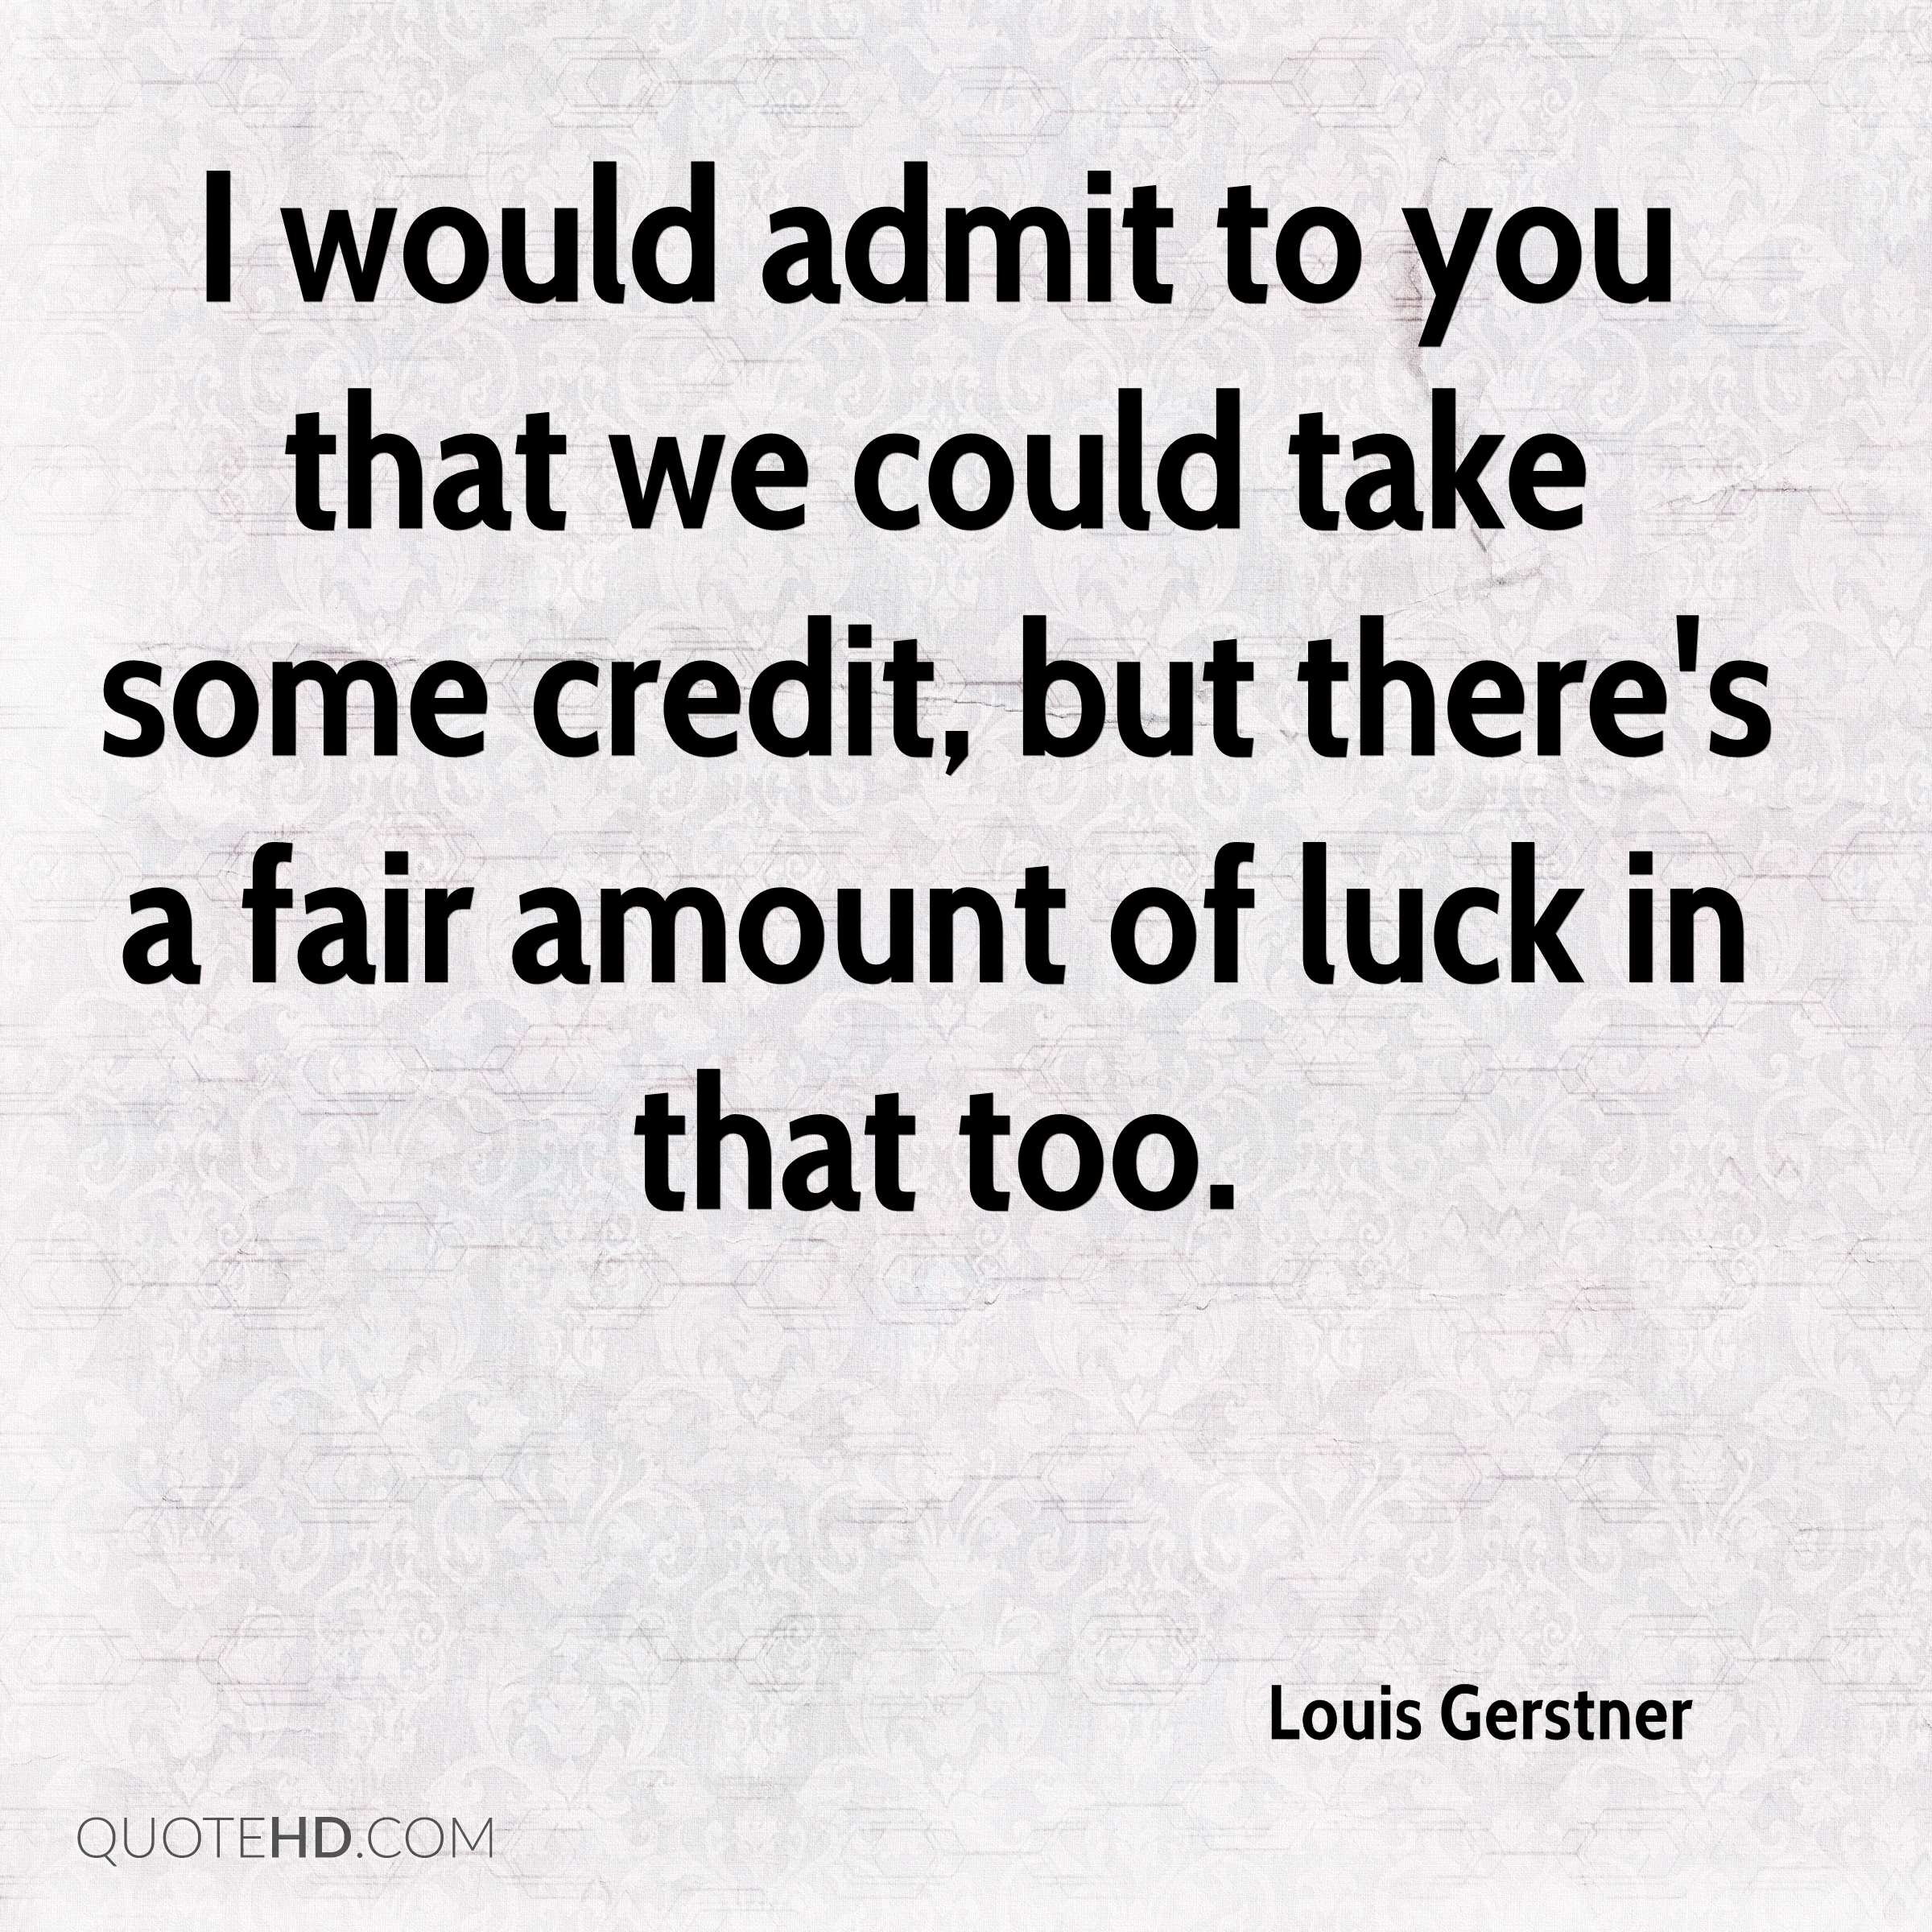 I would admit to you that we could take some credit, but there's a fair amount of luck in that too.